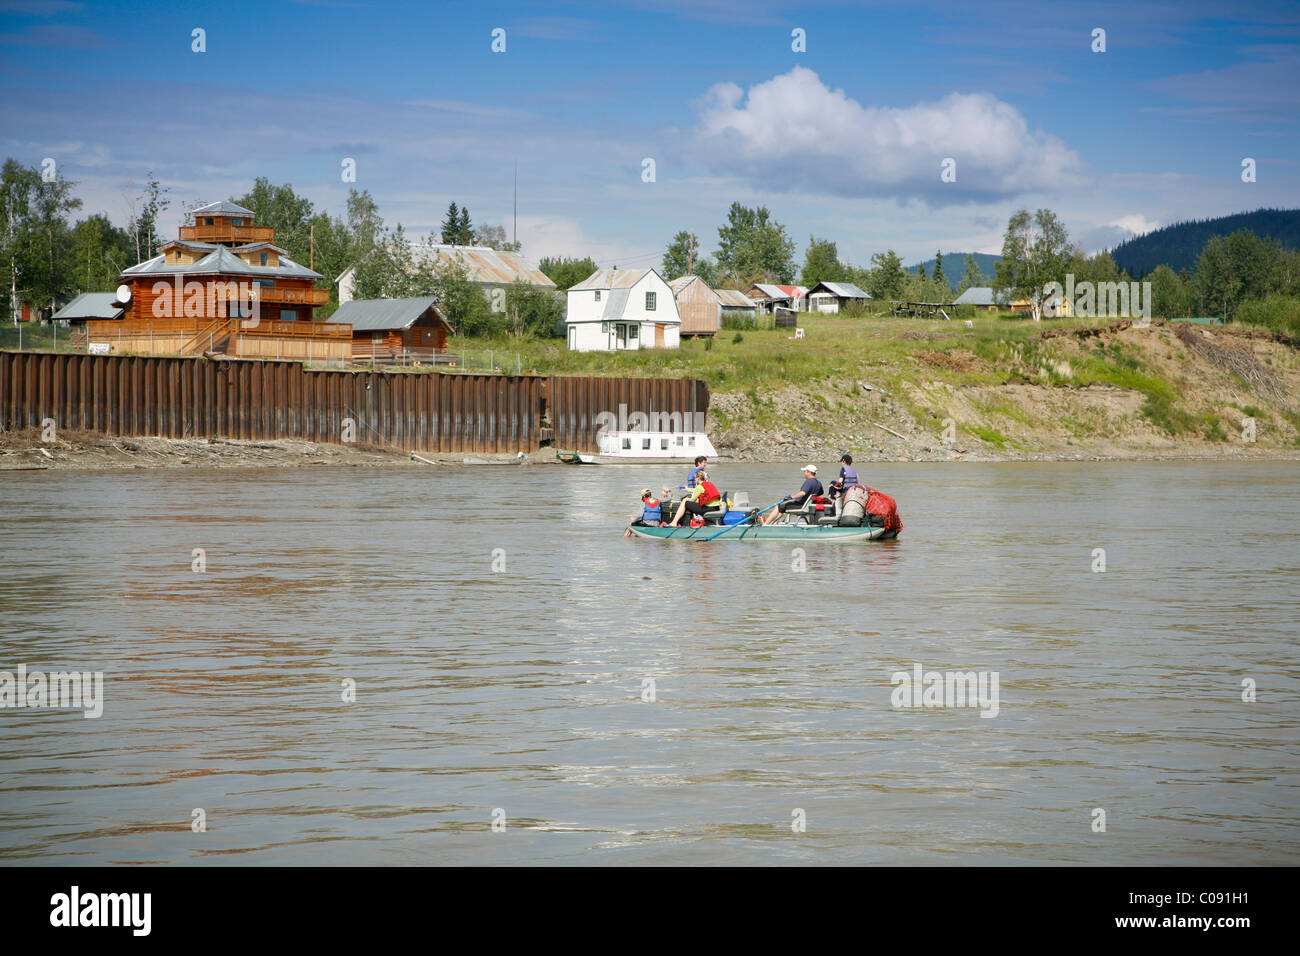 A family floats in a cataraft past the village of Eagle on the Yukon River, Interior Alaska, Summer - Stock Image